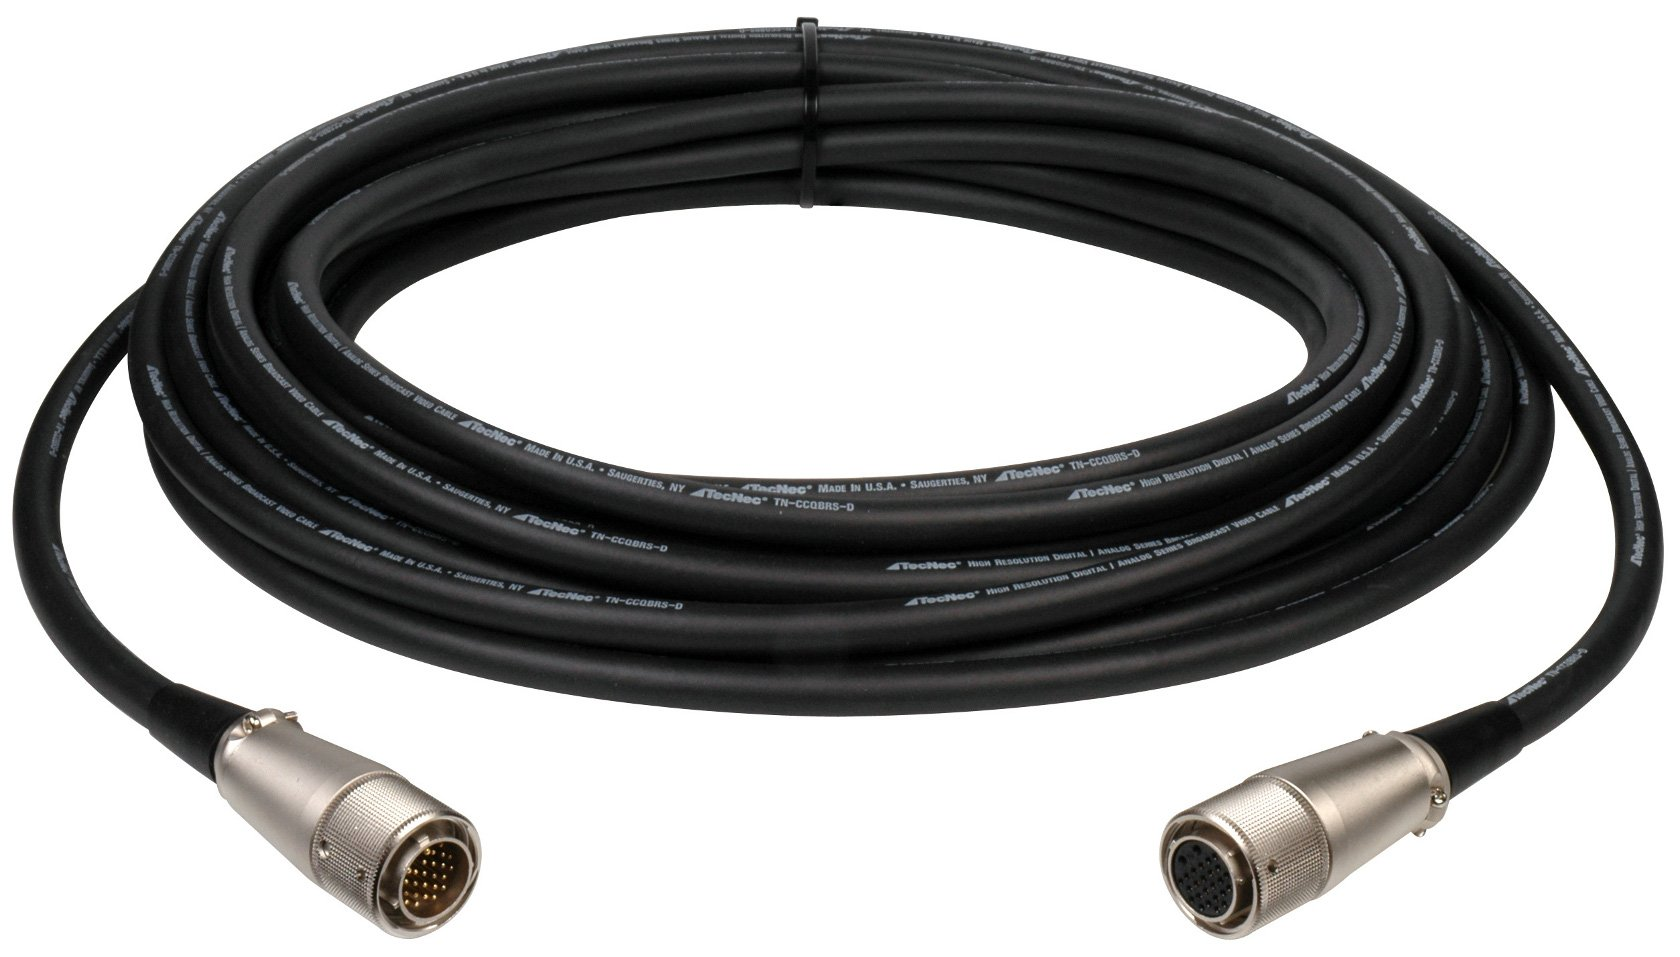 25 ft EIAJ 26-Pin Male to Female Sony Camera Control Cable